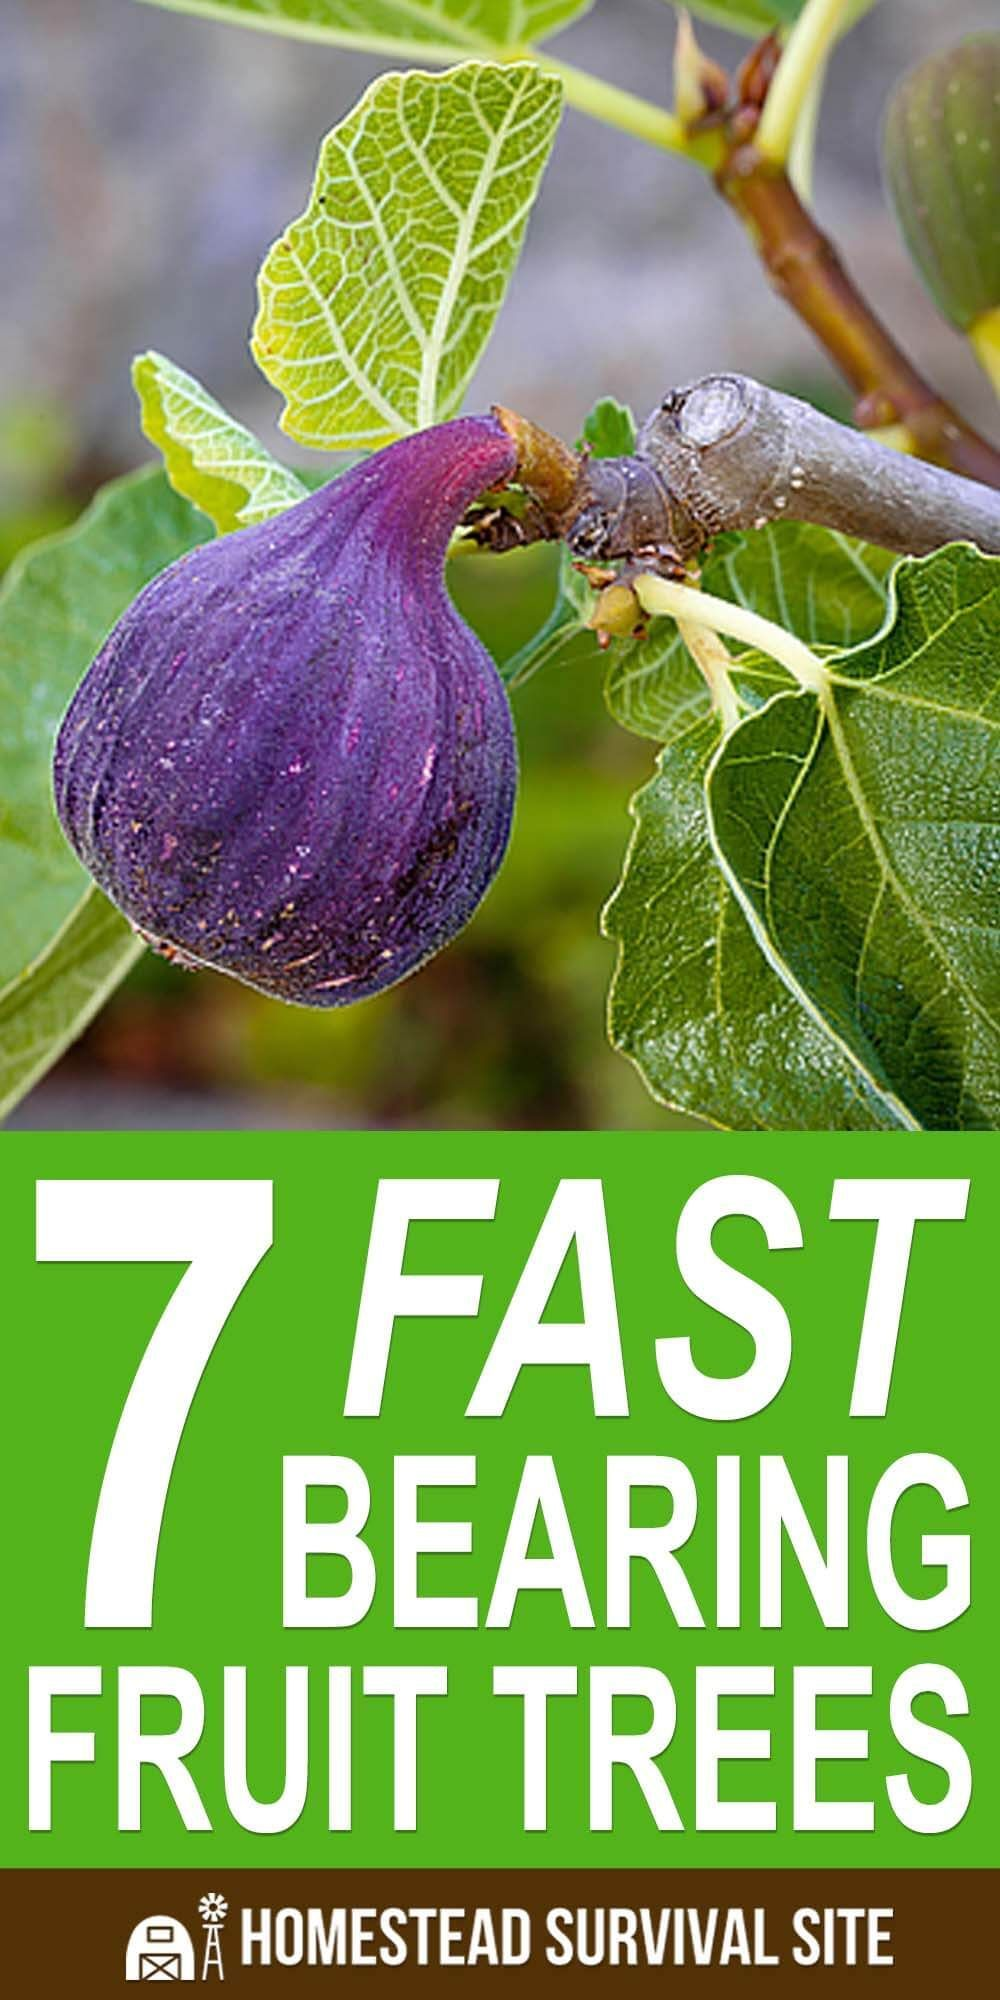 Fast Bearing Fruit Trees Most fruit trees take a long time to start bearing fruit, but there are some varieties that will give you fruit in just a few years.Most fruit trees take a long time to start bearing fruit, but there are some varieties that will give you fruit in just a few years.